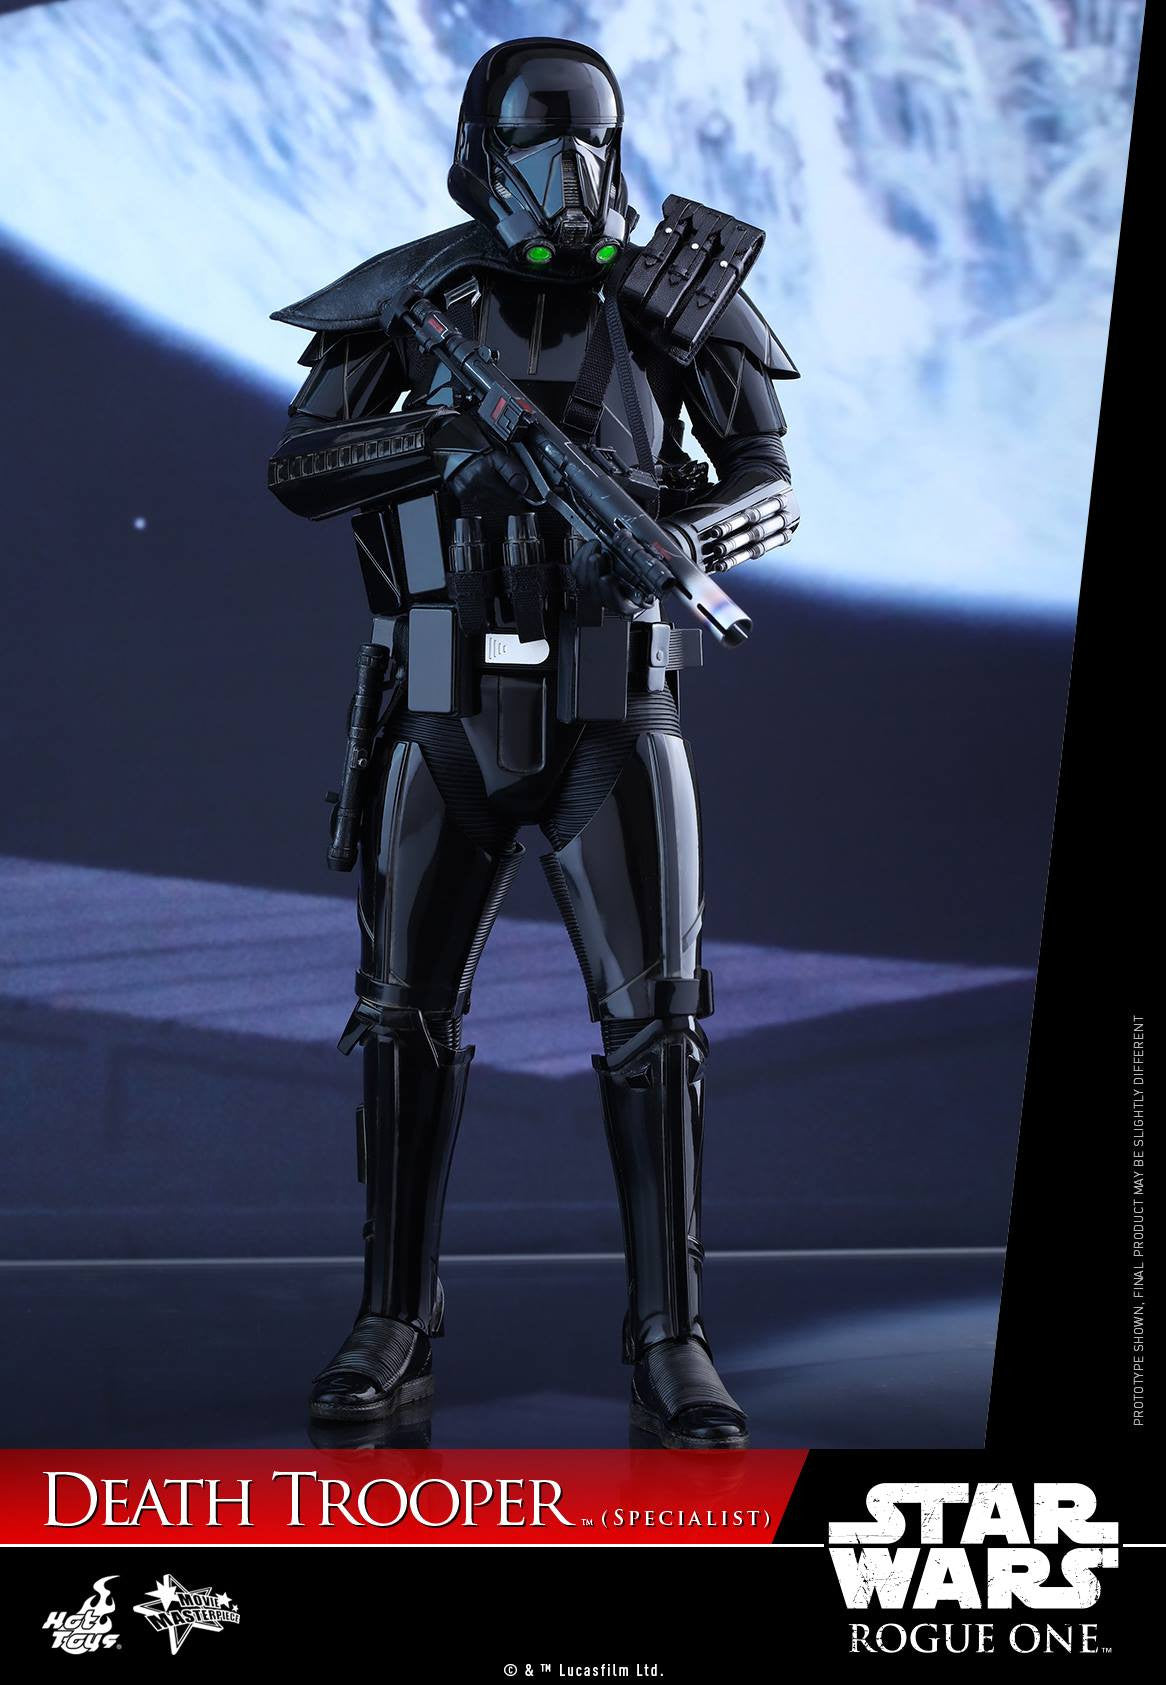 Hot Toys - MMS385 - Rogue One: A Star Wars Story - Death Trooper (Specialist) - Marvelous Toys - 3